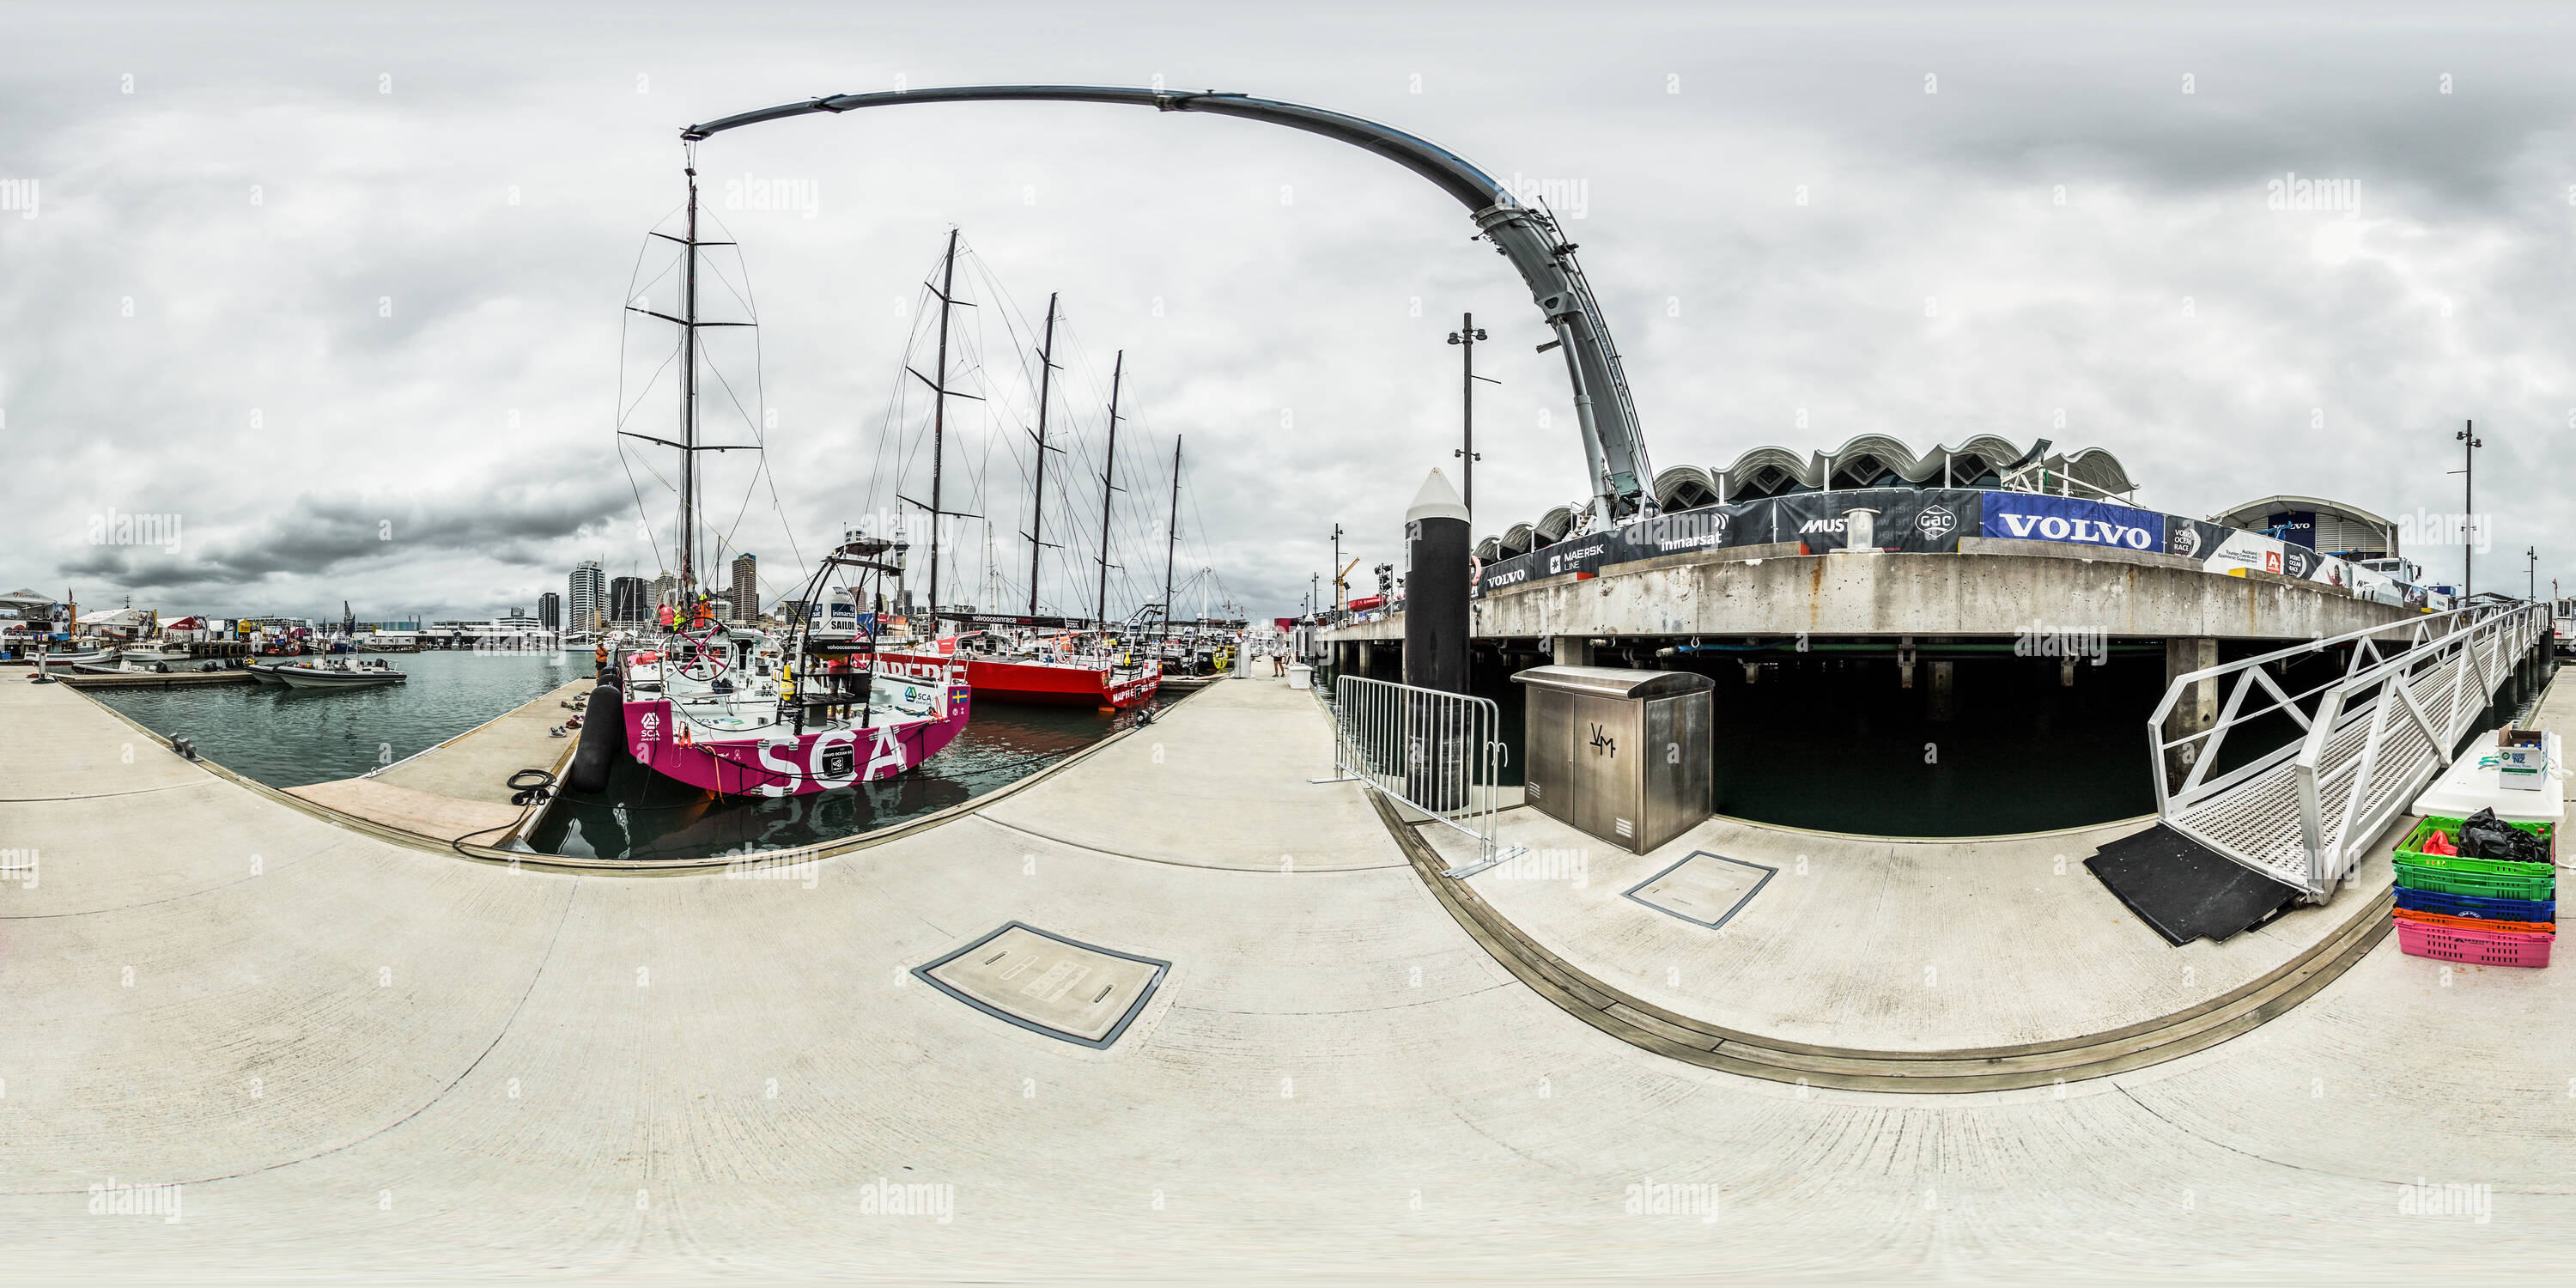 ad7c8211f9e6 Team SCA - VO65 Rigging - Berthing Pontoons - Volvo Ocean Race 2015 Auckland  Stopover - New Zealand